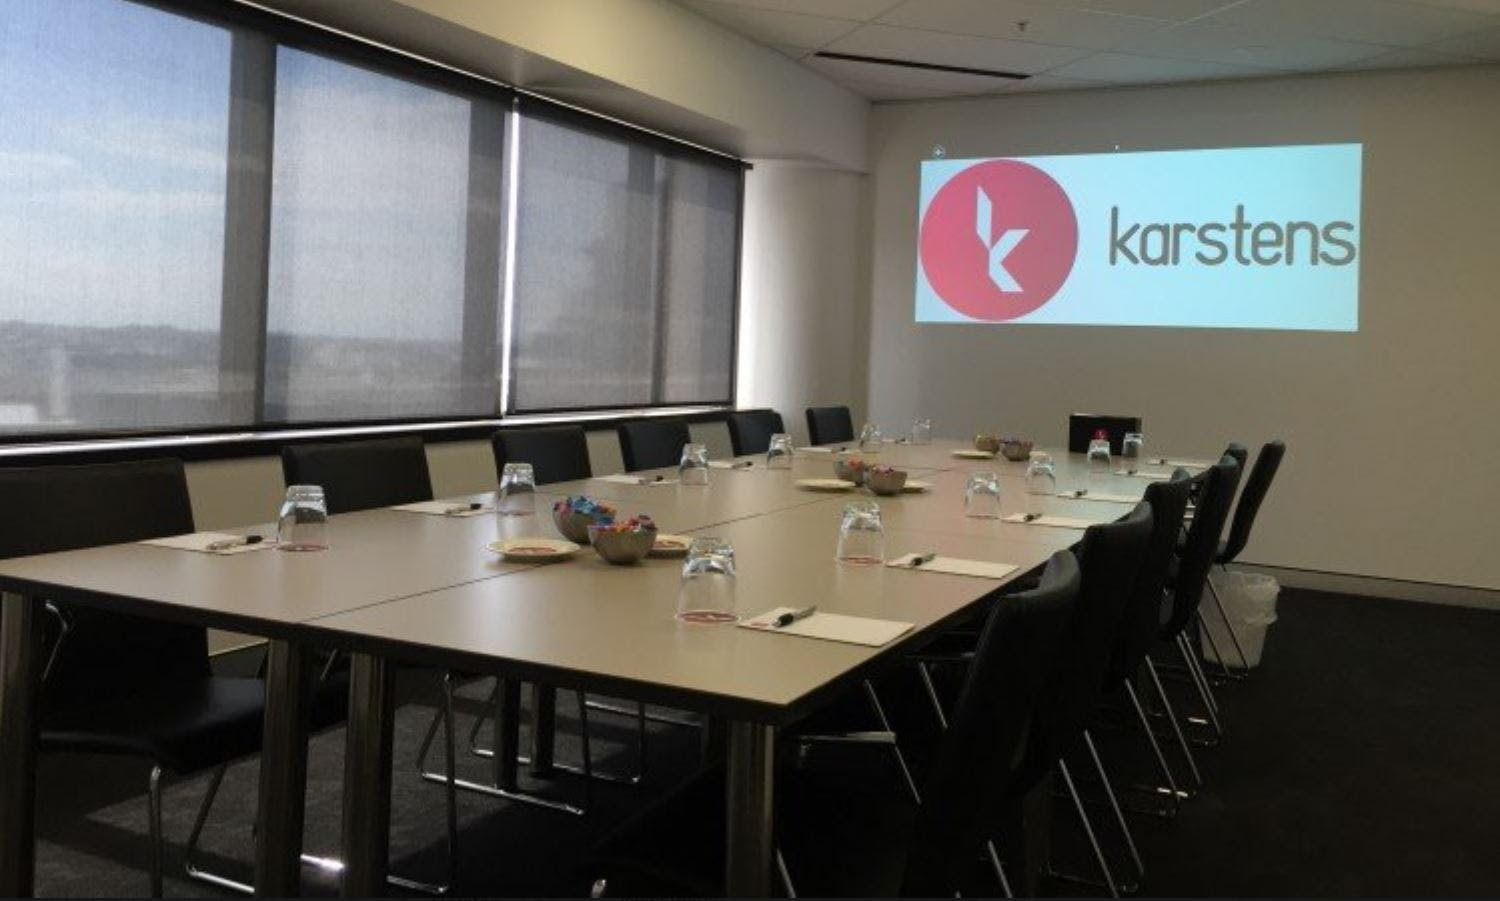 Board Room, meeting room at Karstens Brisbane, image 1